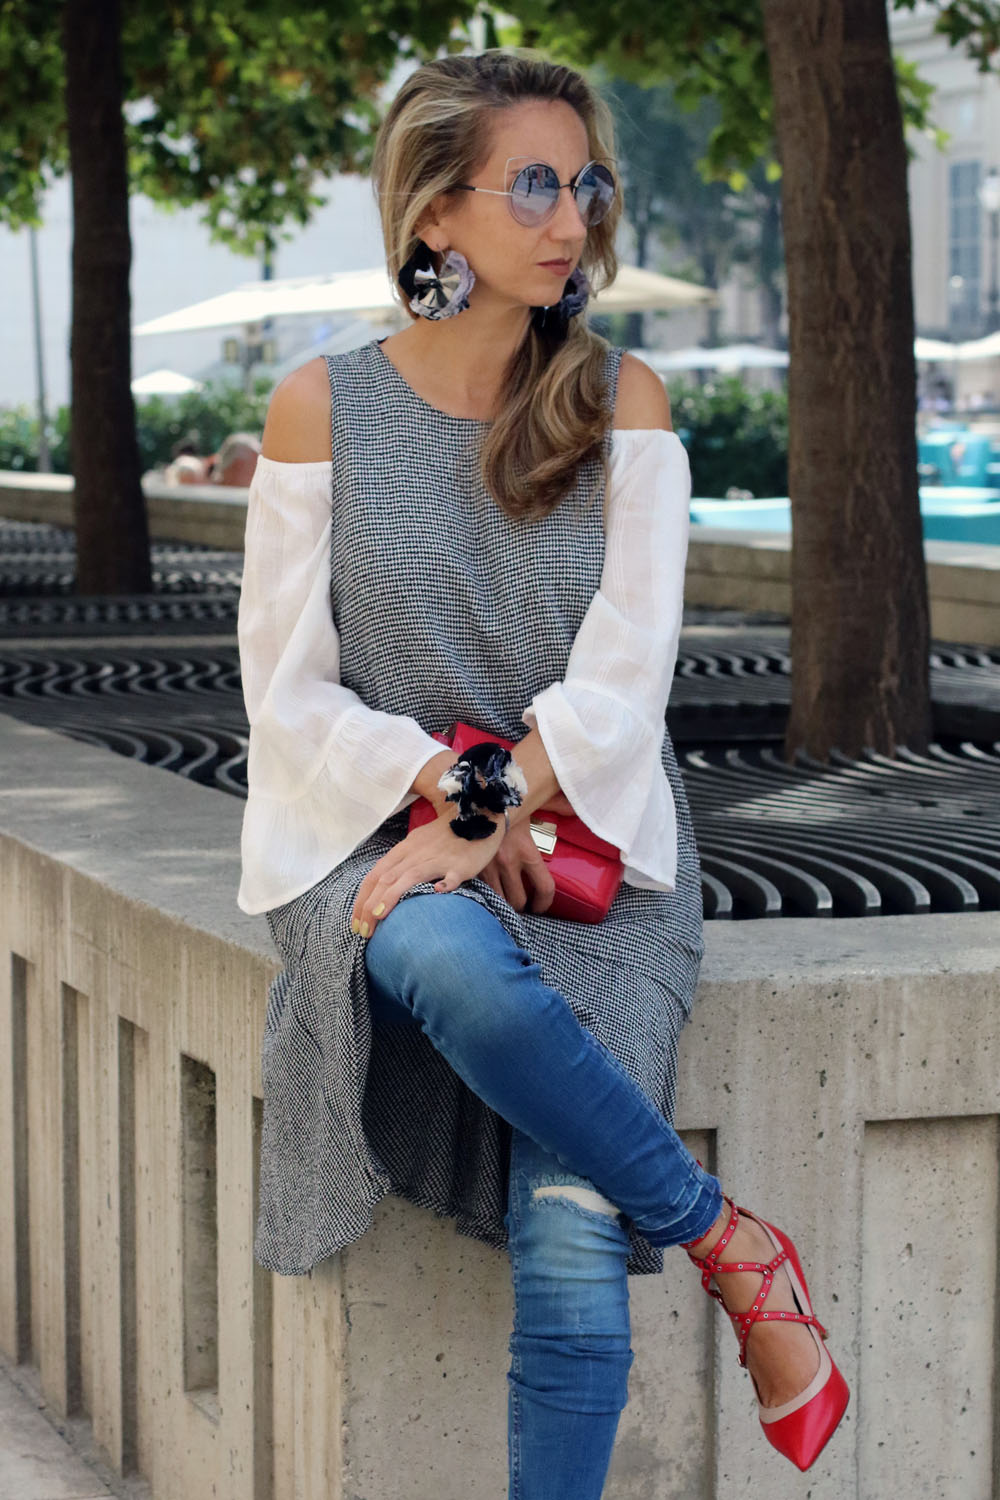 colourclub-fashion-blog-museums-quartier-vienna-valentino-pumps-furla-bag-off-shoulder-top-outfit-kleid-ueber-hose-bluejeans-skinny-jeans-lagenlook-marc-jacobs-sonnenbrille3